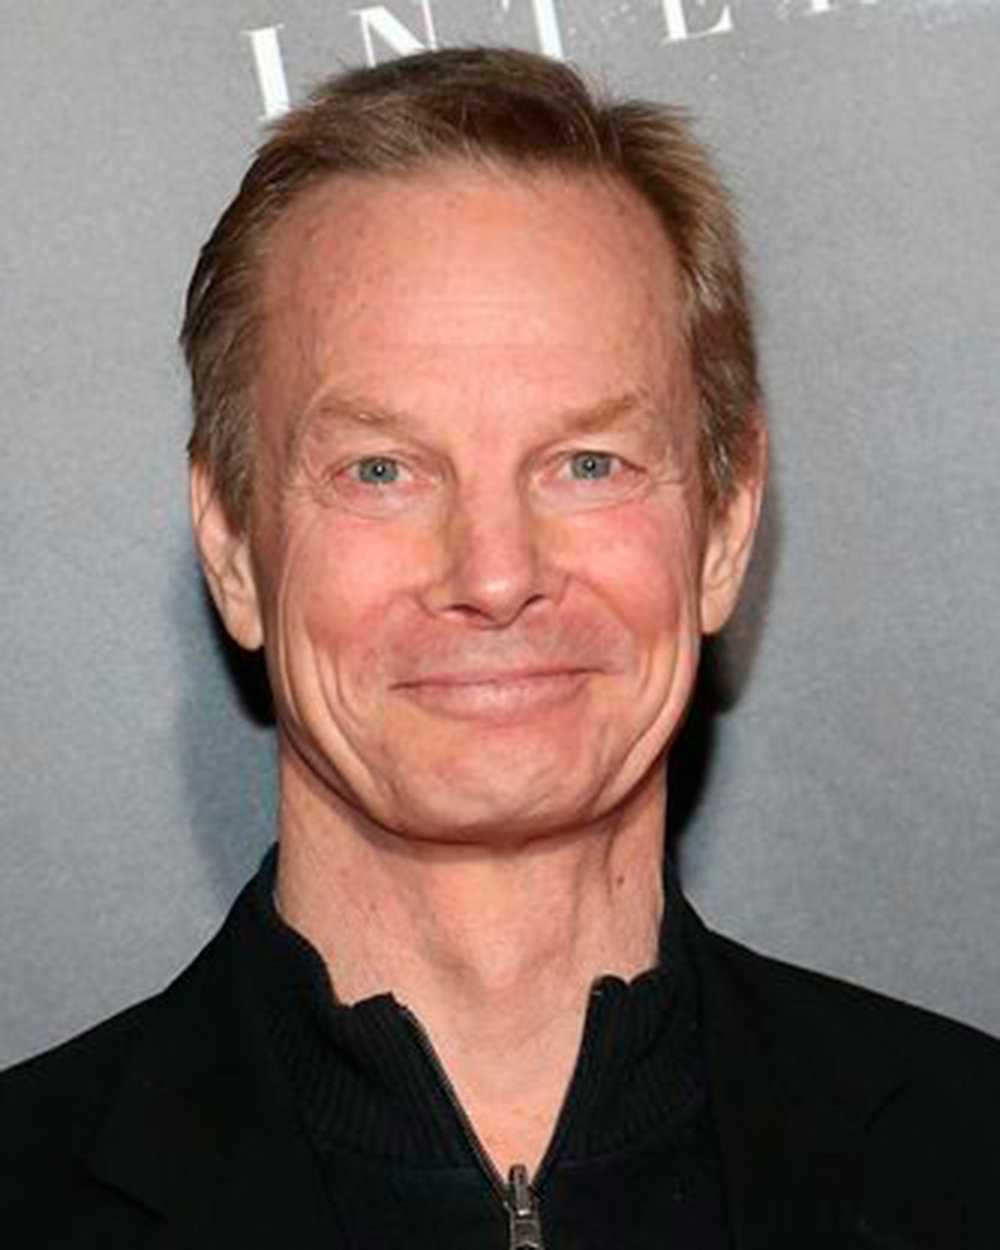 "BILL IRWIN as Richard, Veronica's father - Bill Irwin is an American actor and comedian, best known for his vaudeville-style stage performances as well as numerous appearances on film and television. He won a Tony Award for his role in Who's Afraid of Virginia Woolf? on Broadway and has been noted for his contribution to the renaissance of American circus during the 1970s.On screen he received critical acclaim for his role as Paul, father to Anne Hathaway's character Kym, in the 2008 drama Rachel Getting Married. Irwin voiced the robot TARS in the film Interstellar, and puppeteered the robot in most scenes. Other film credits include: Robert Altman's Popeye, Stepping Out with Liza Minnelli, My Blue Heaven, Eight Men Out, Hot Shots!, Silent Tongue, Scenes from a Mall, Across the Universe, adaptations of How The Grinch Stole Christmas, The Laramie Project, A Midsummer Night's Dream. On television Irwin regularly appears on the NBC crime series ""Law & Order: Special Victims Unit"" as therapist, Dr. Peter Lindstrom. Currently he appears in the FX superhero series ""Legion"". He is also known as Mr. Noodle on Sesame Street's ""Elmo's World"" and as serial killer Nate Haskell on ""CSI"".Irwin has created several highly regarded stage shows that incorporate elements of clowning, often in collaboration with composer Doug Skinner. These works include The Regard of Flight Largely New York (Outer Critics Circle Award, Drama Desk Award), Fool Moon (Drama Desk Award, Tony Award), The Harlequin Studies, and Mr. Fox: A Rumination. In 2013, he teamed with David Shiner to create and perform in the Off-Broadway"